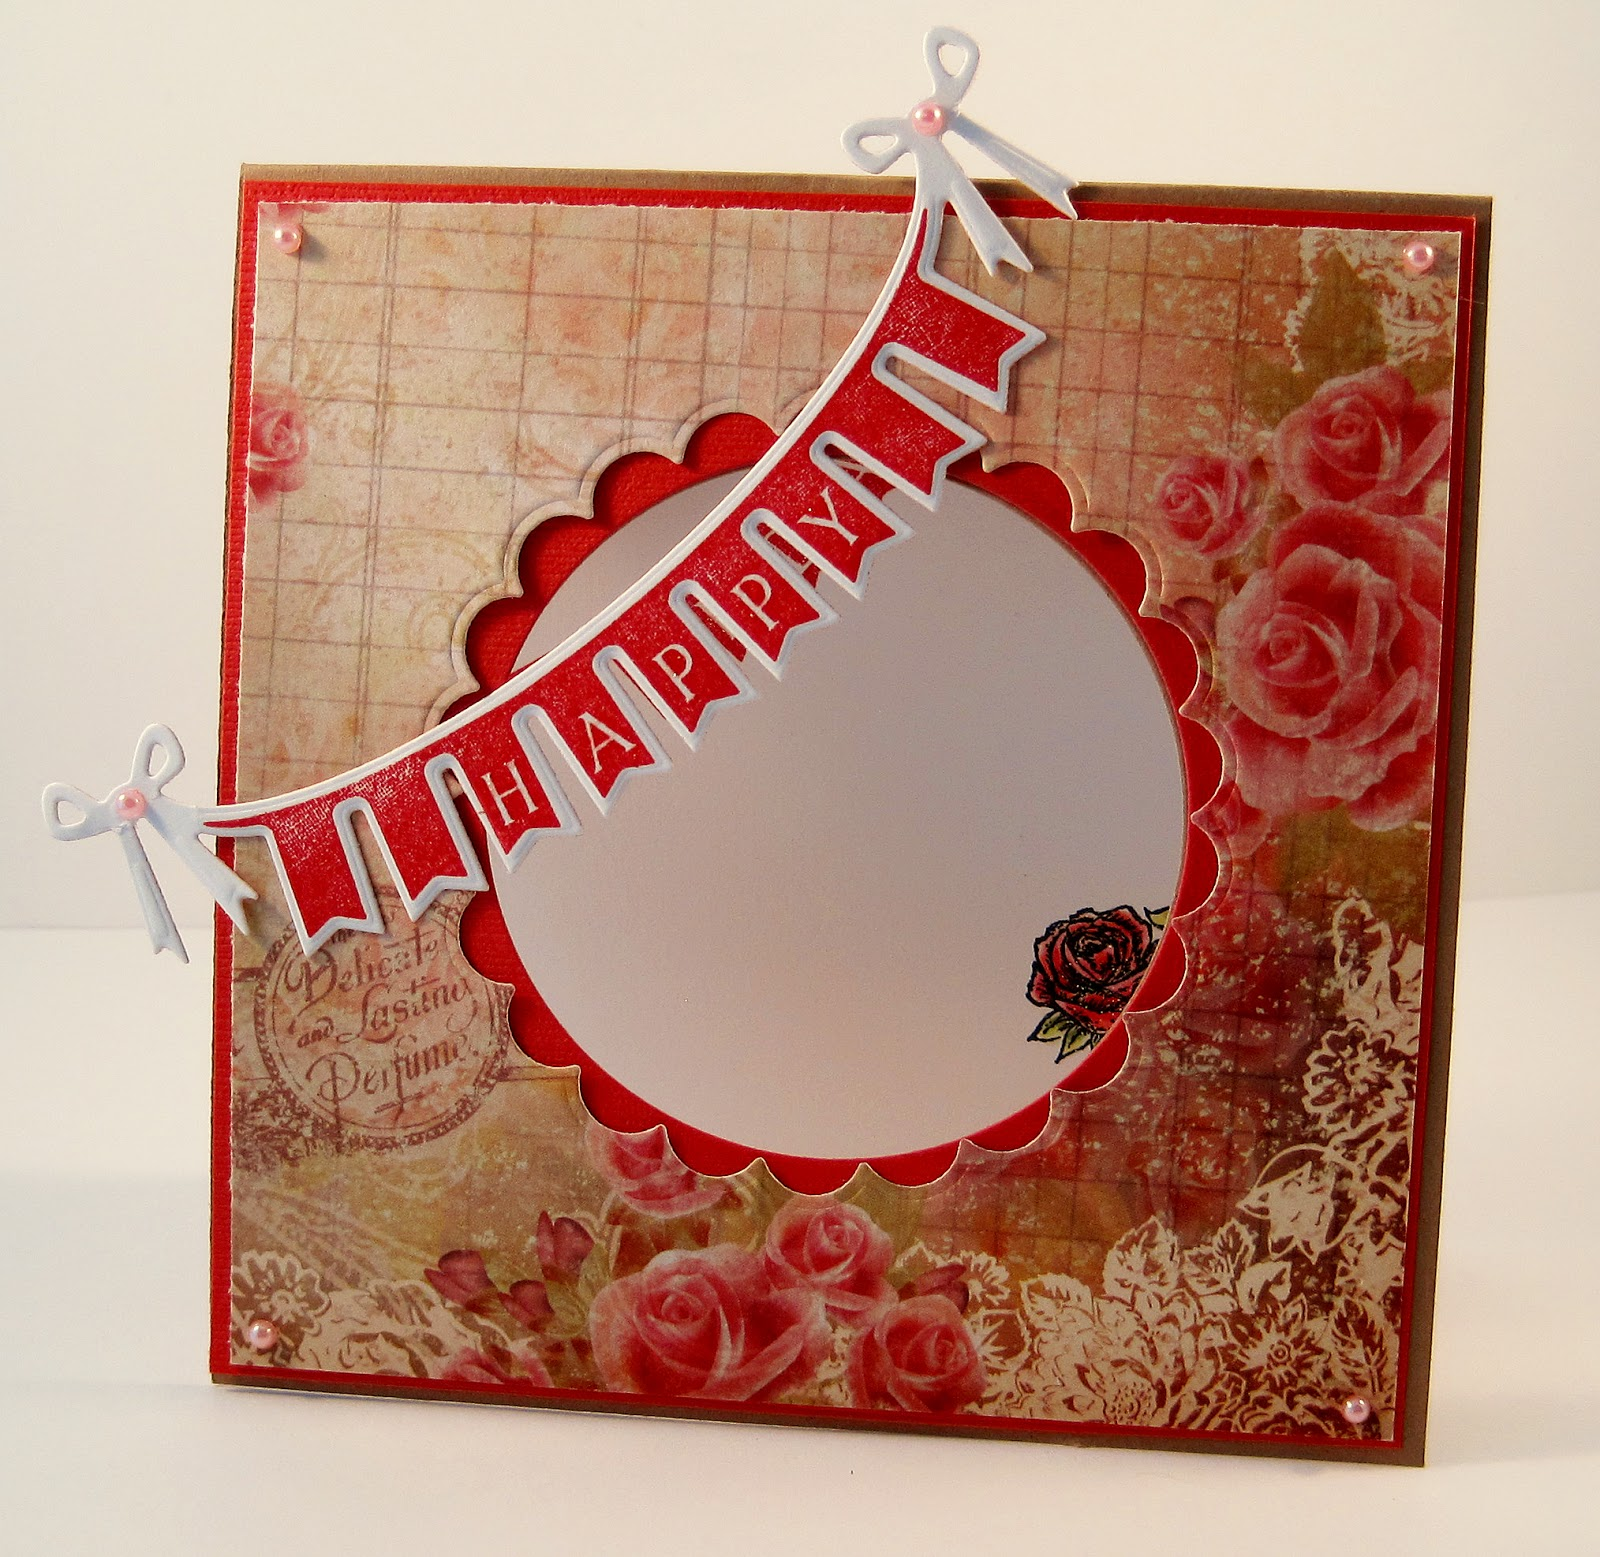 Stamps - Our Daily Bread Designs Pennant Swag 2, Rose, ODBD Blushing Rose Paper Collection, ODBD Custom Pennant Swag Die